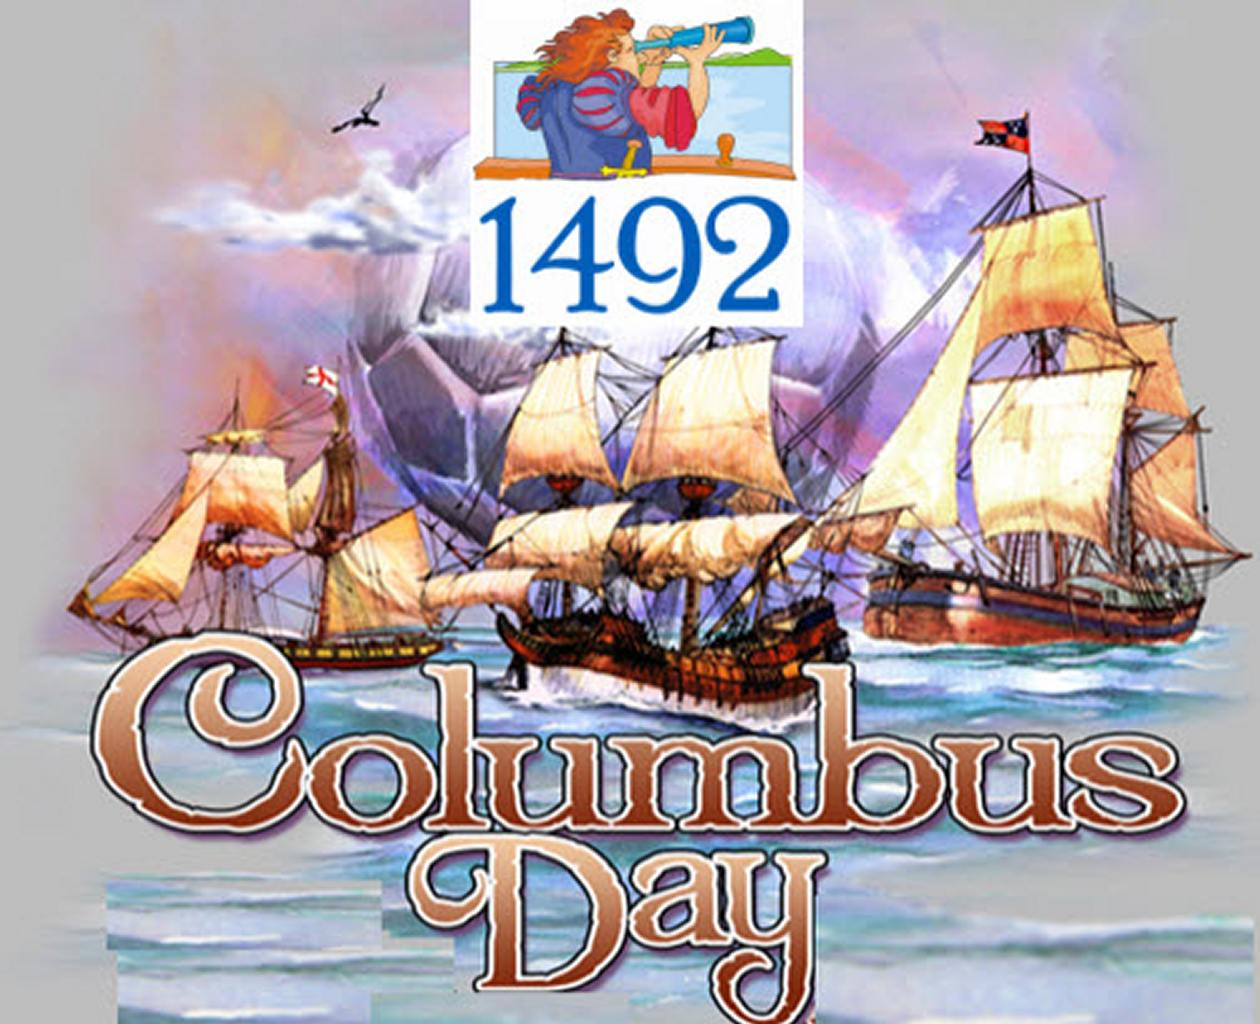 Columbus Day Holiday October 9th Lackawanna County Library System